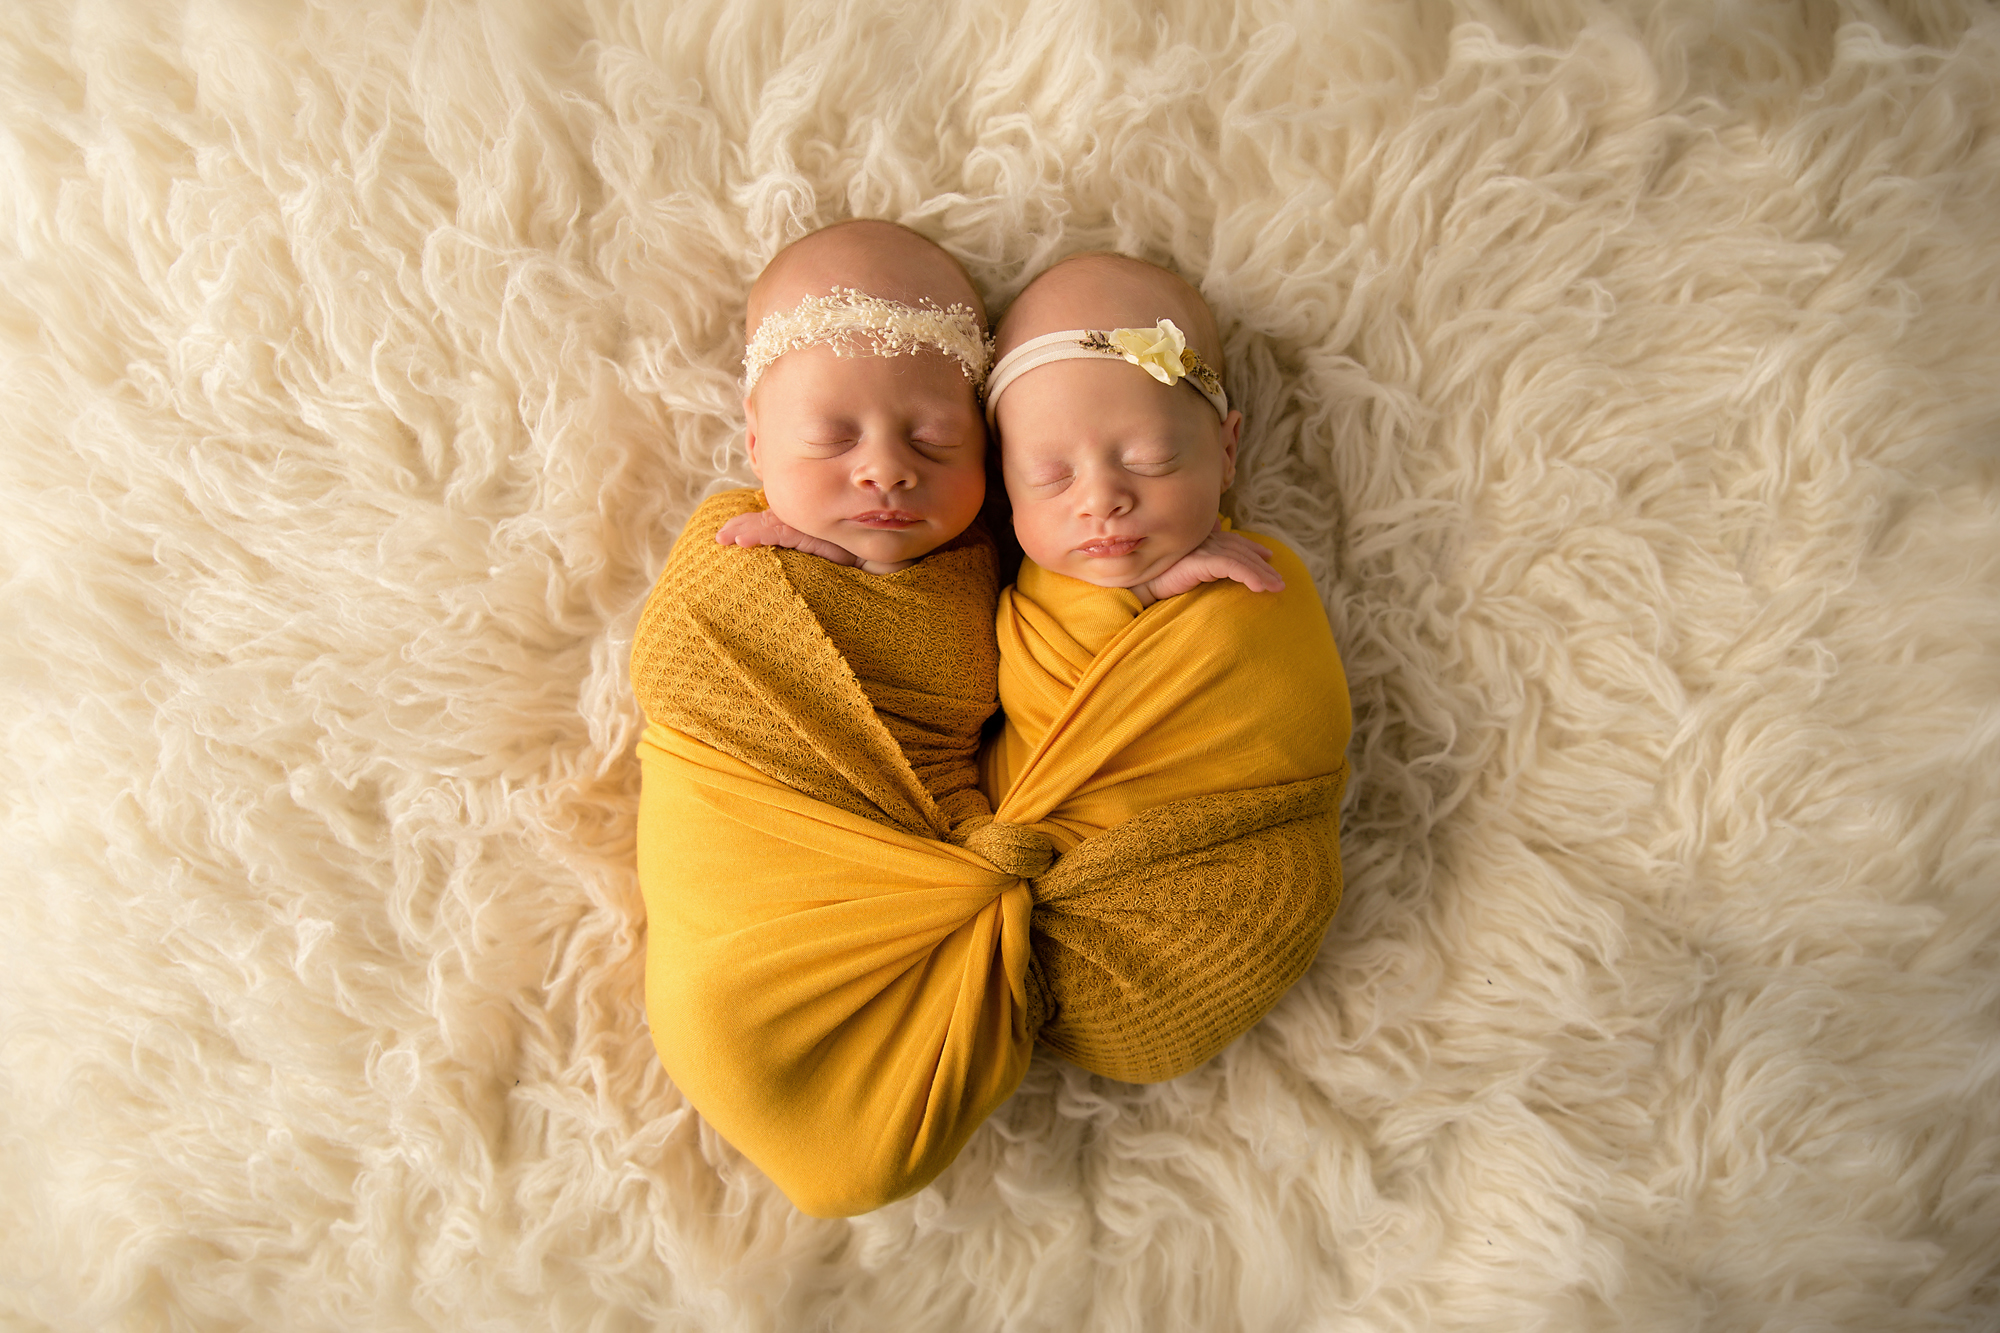 Twins Photography in Calgary, Alberta by Milashka Photography. One twin is 1 pound smaller then the other and it shows in this photo as they are both posed side by side.